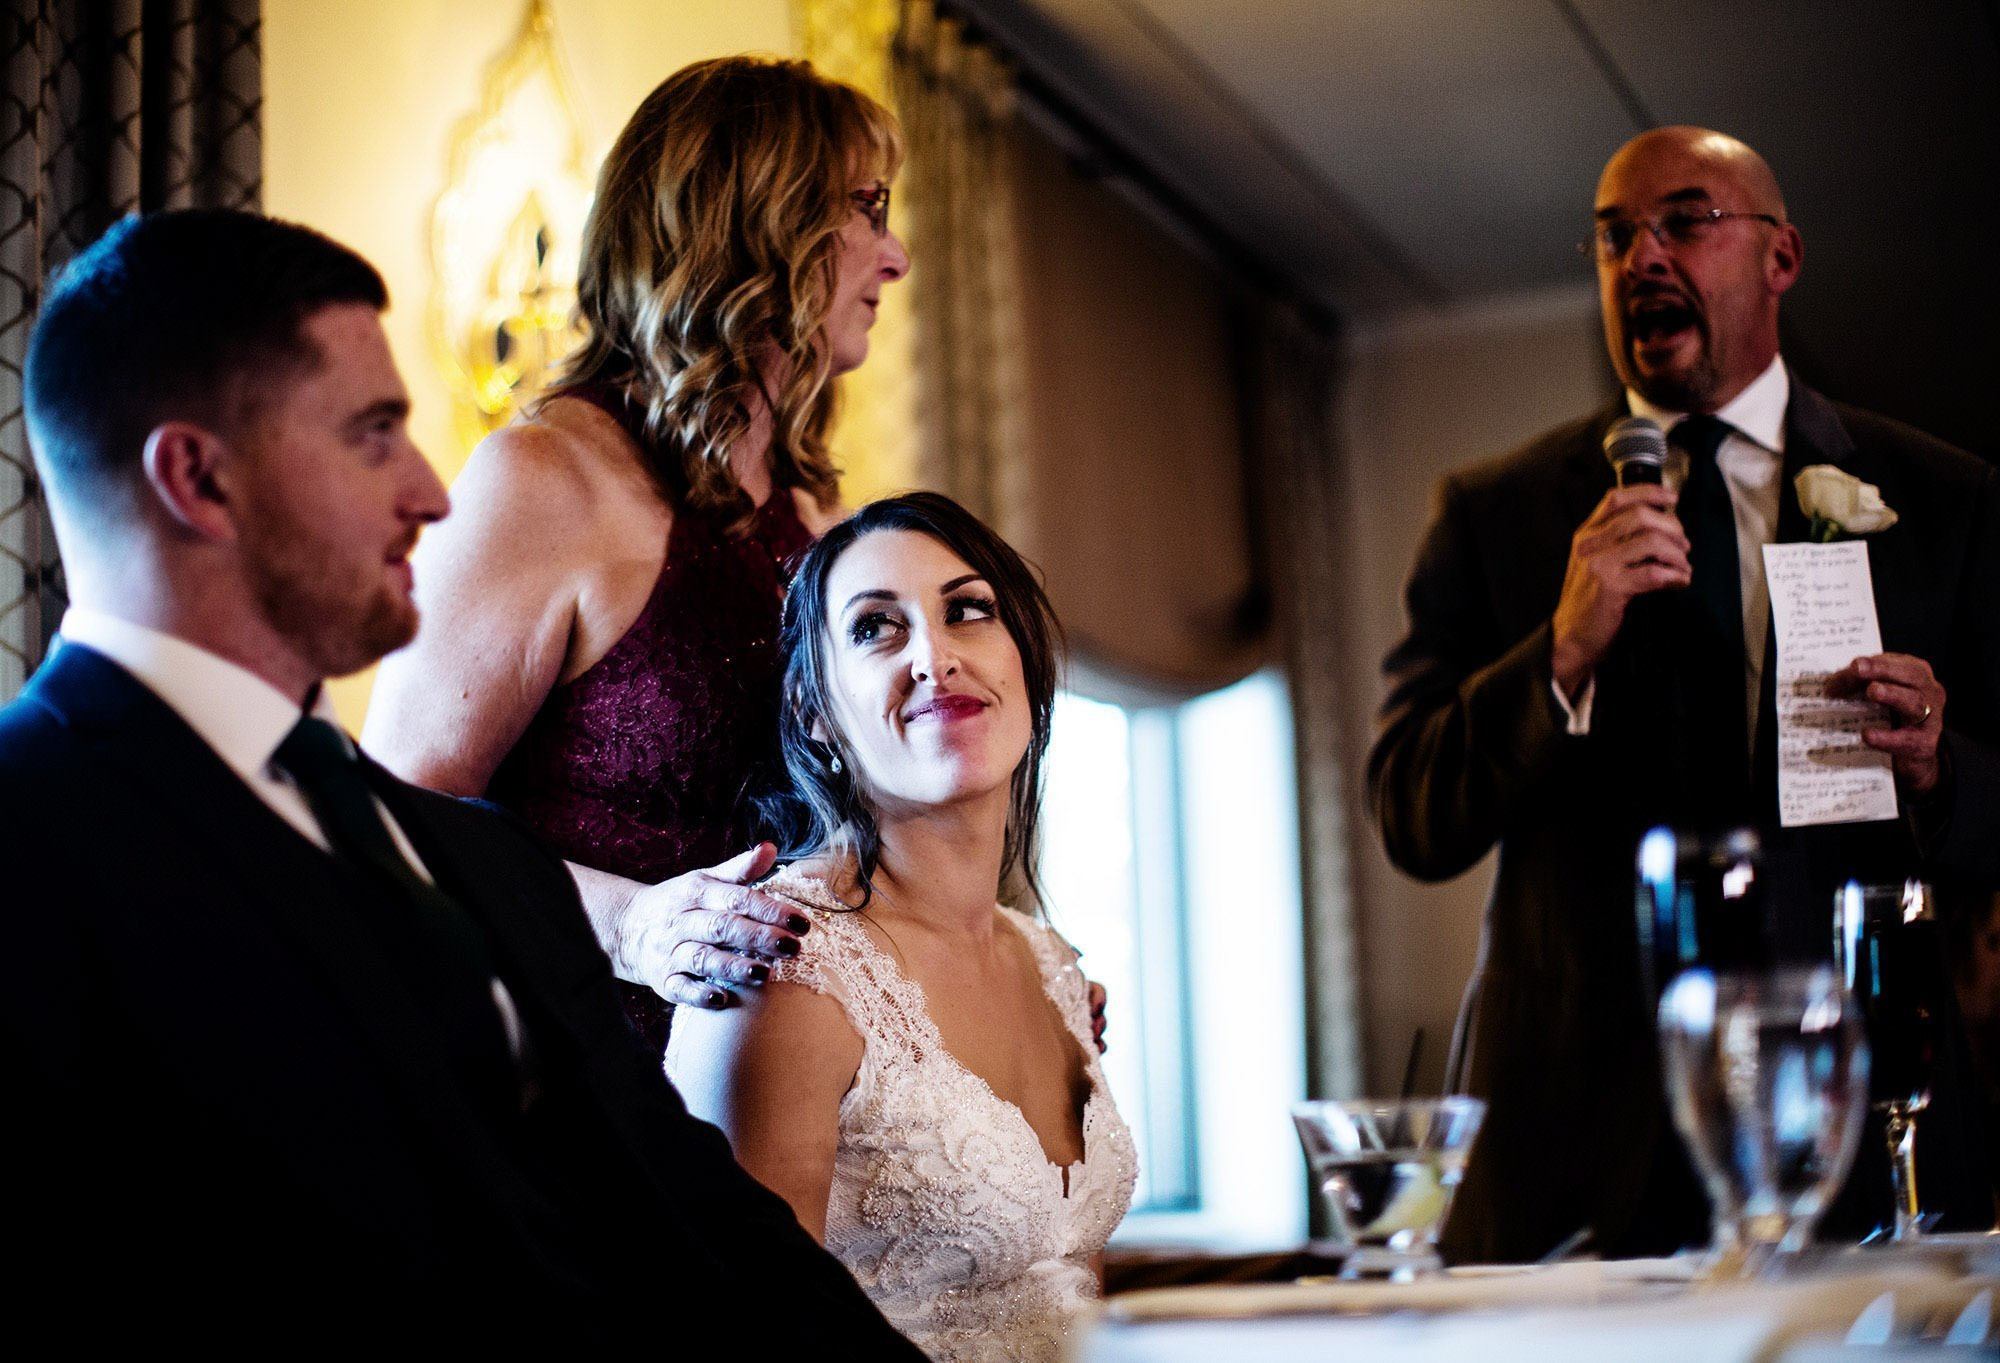 The bride looks at her groom during toasts at The Villa at Ridder Country Club.